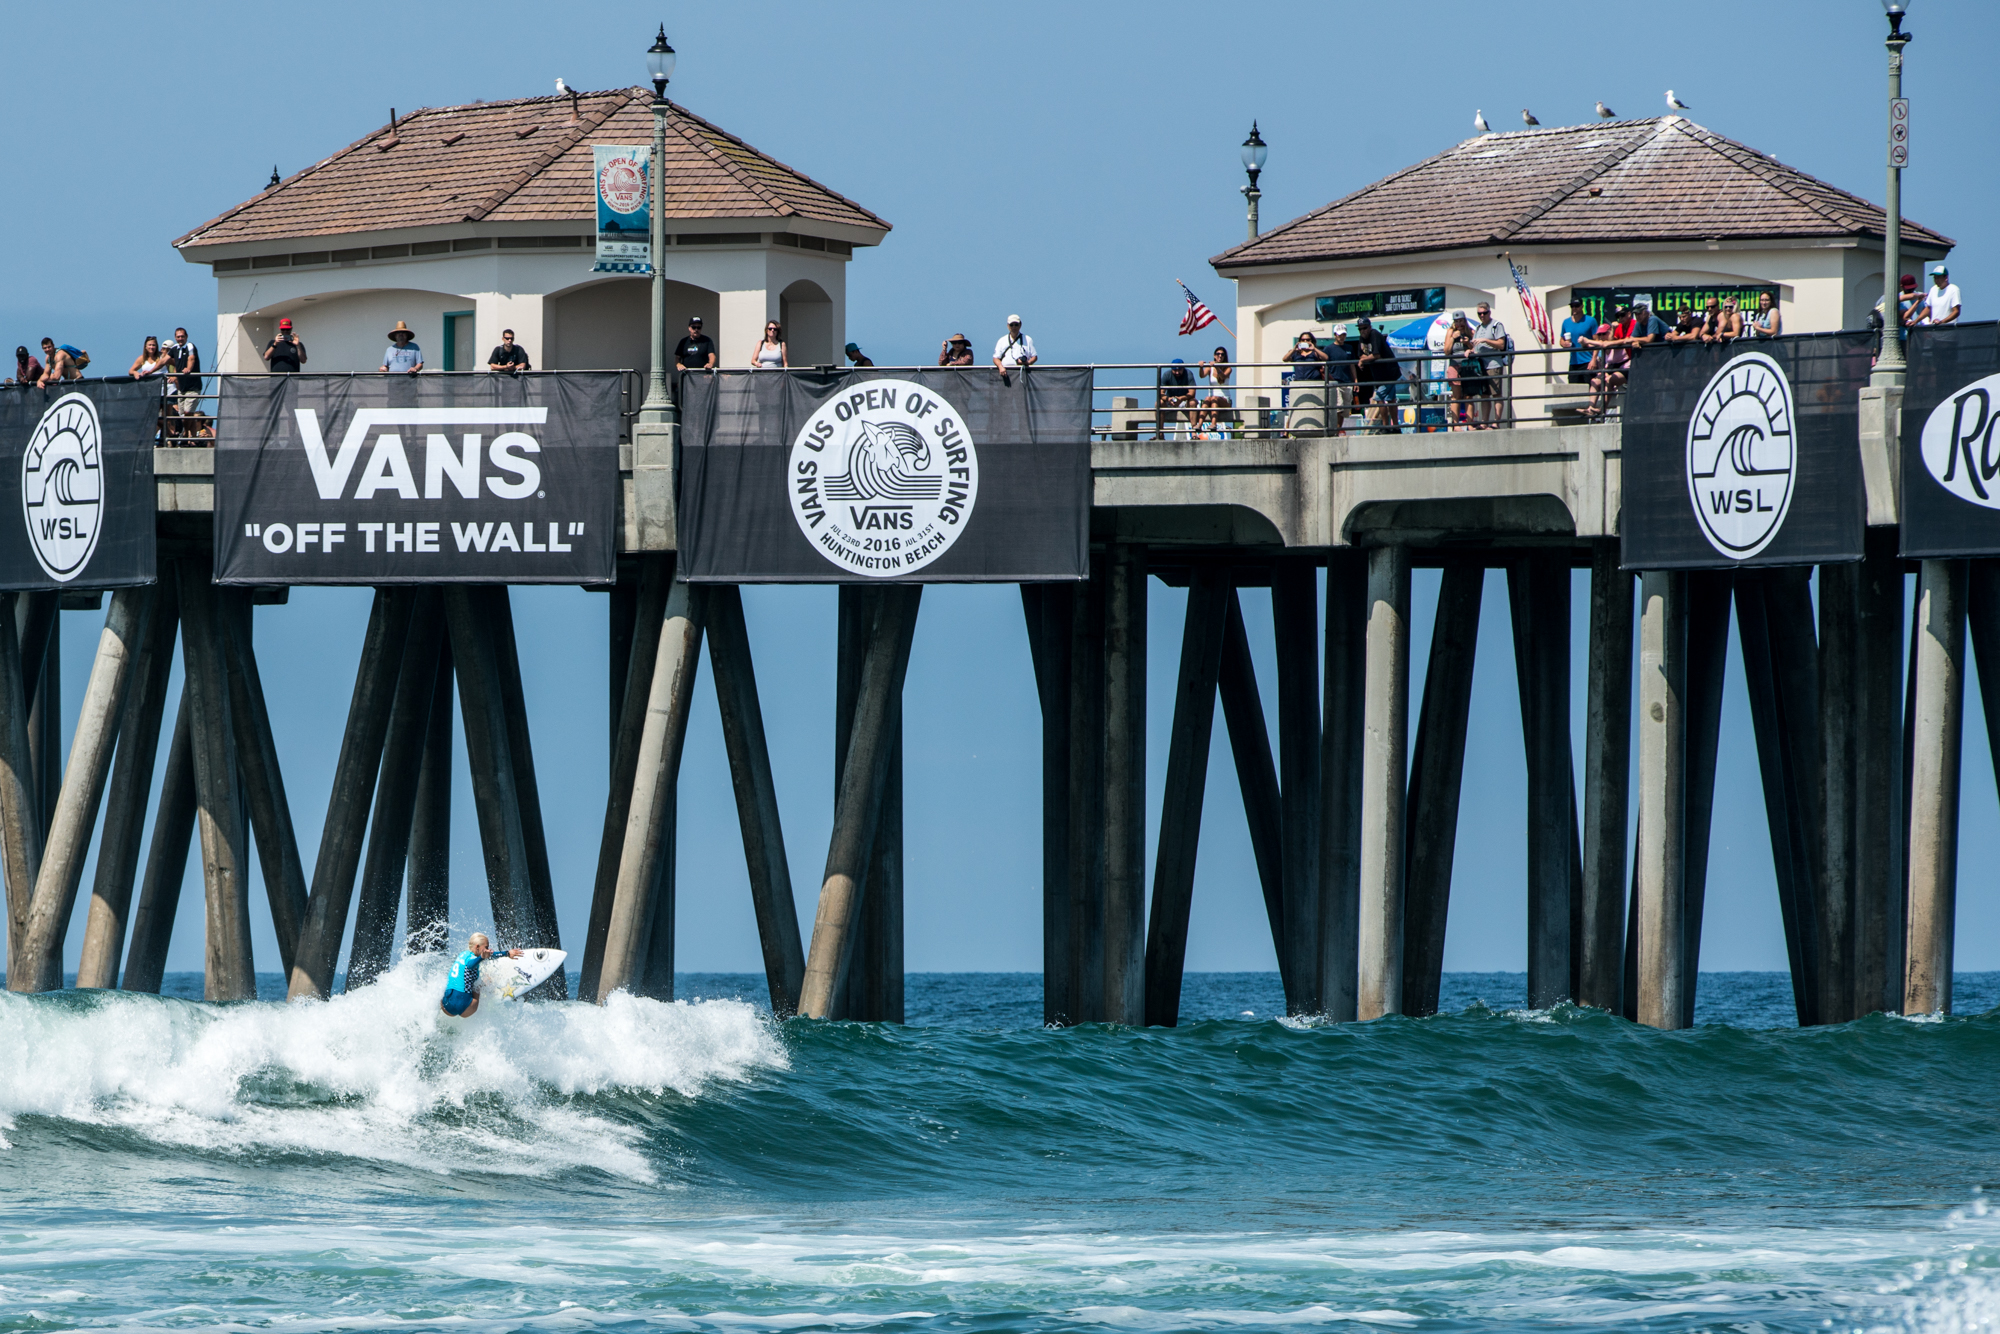 US Open of Surf